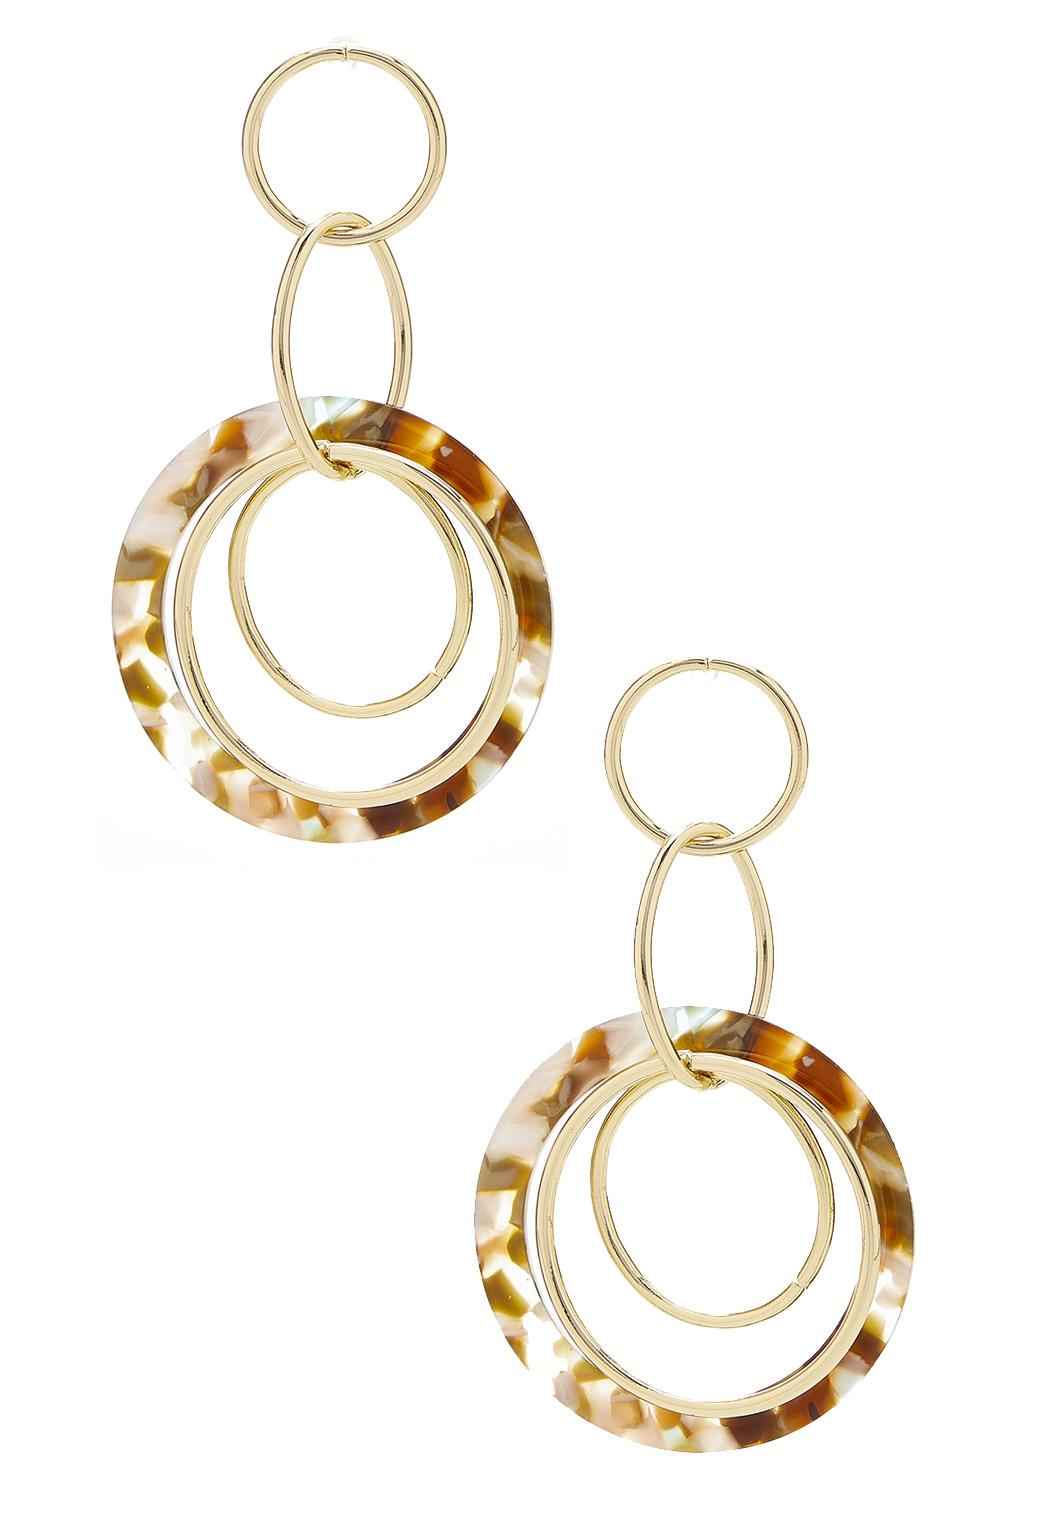 Marbled Linked Lucite Earrings